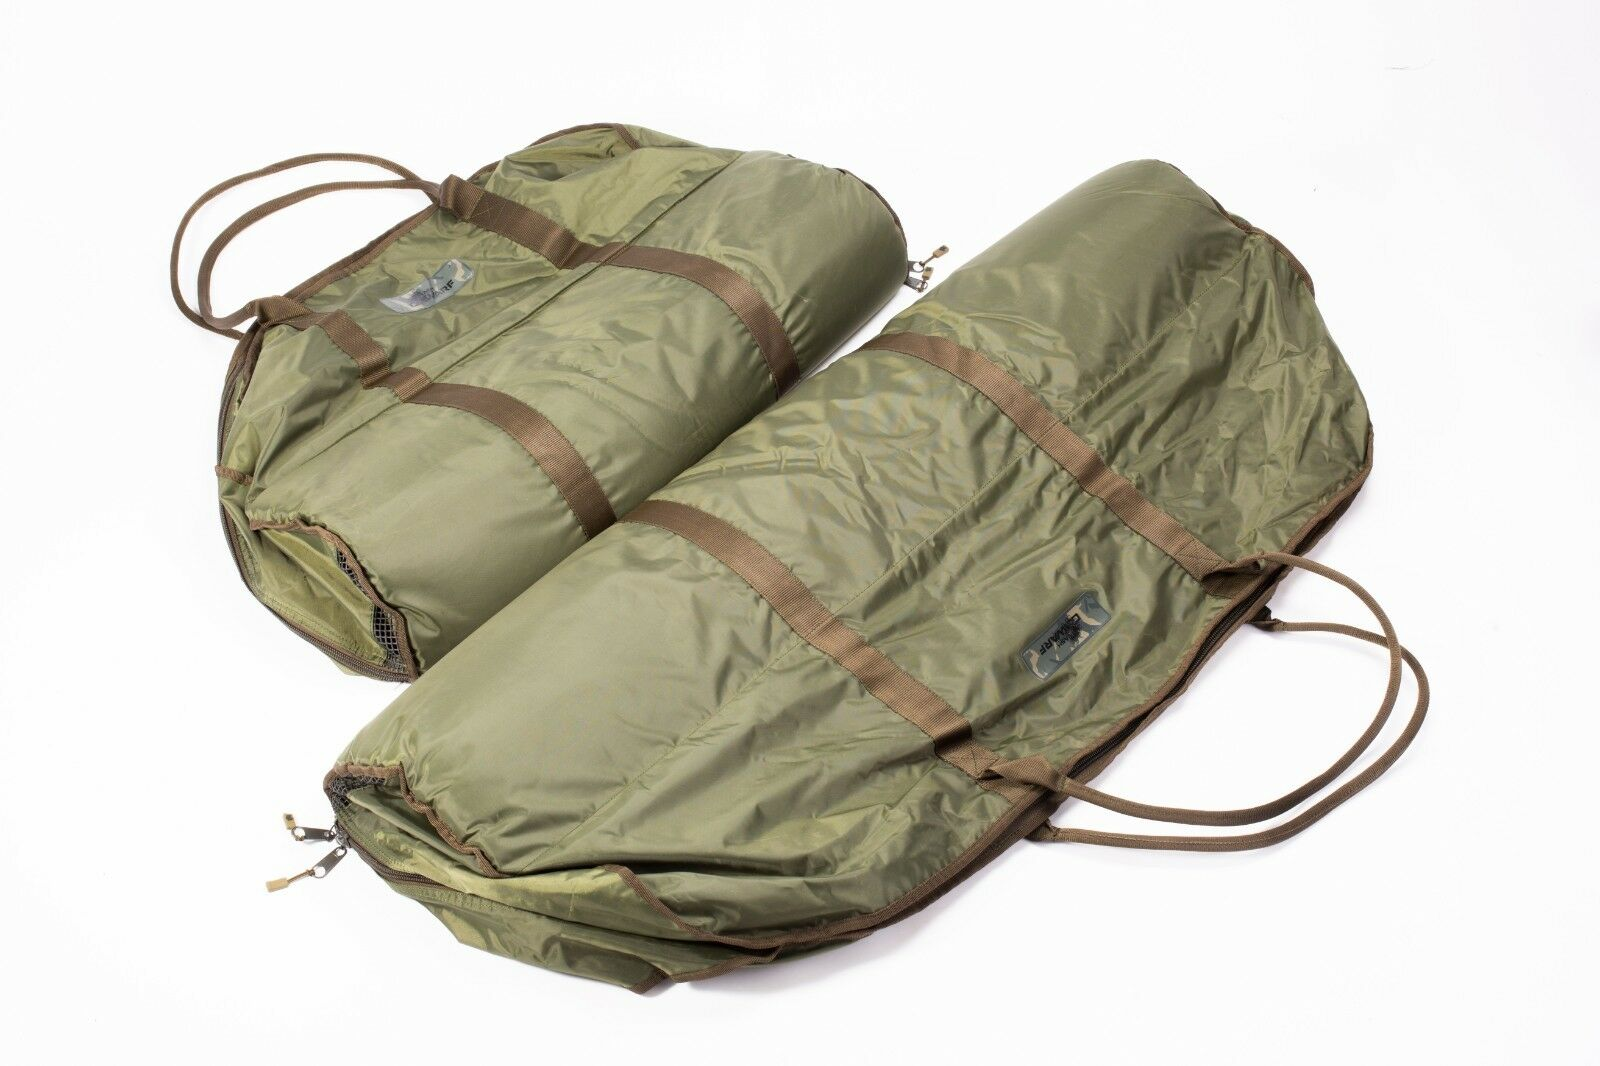 Nash Dwarf Sling Mat NEW Carp Fishing Travel Unhooking Mat Both Sizes